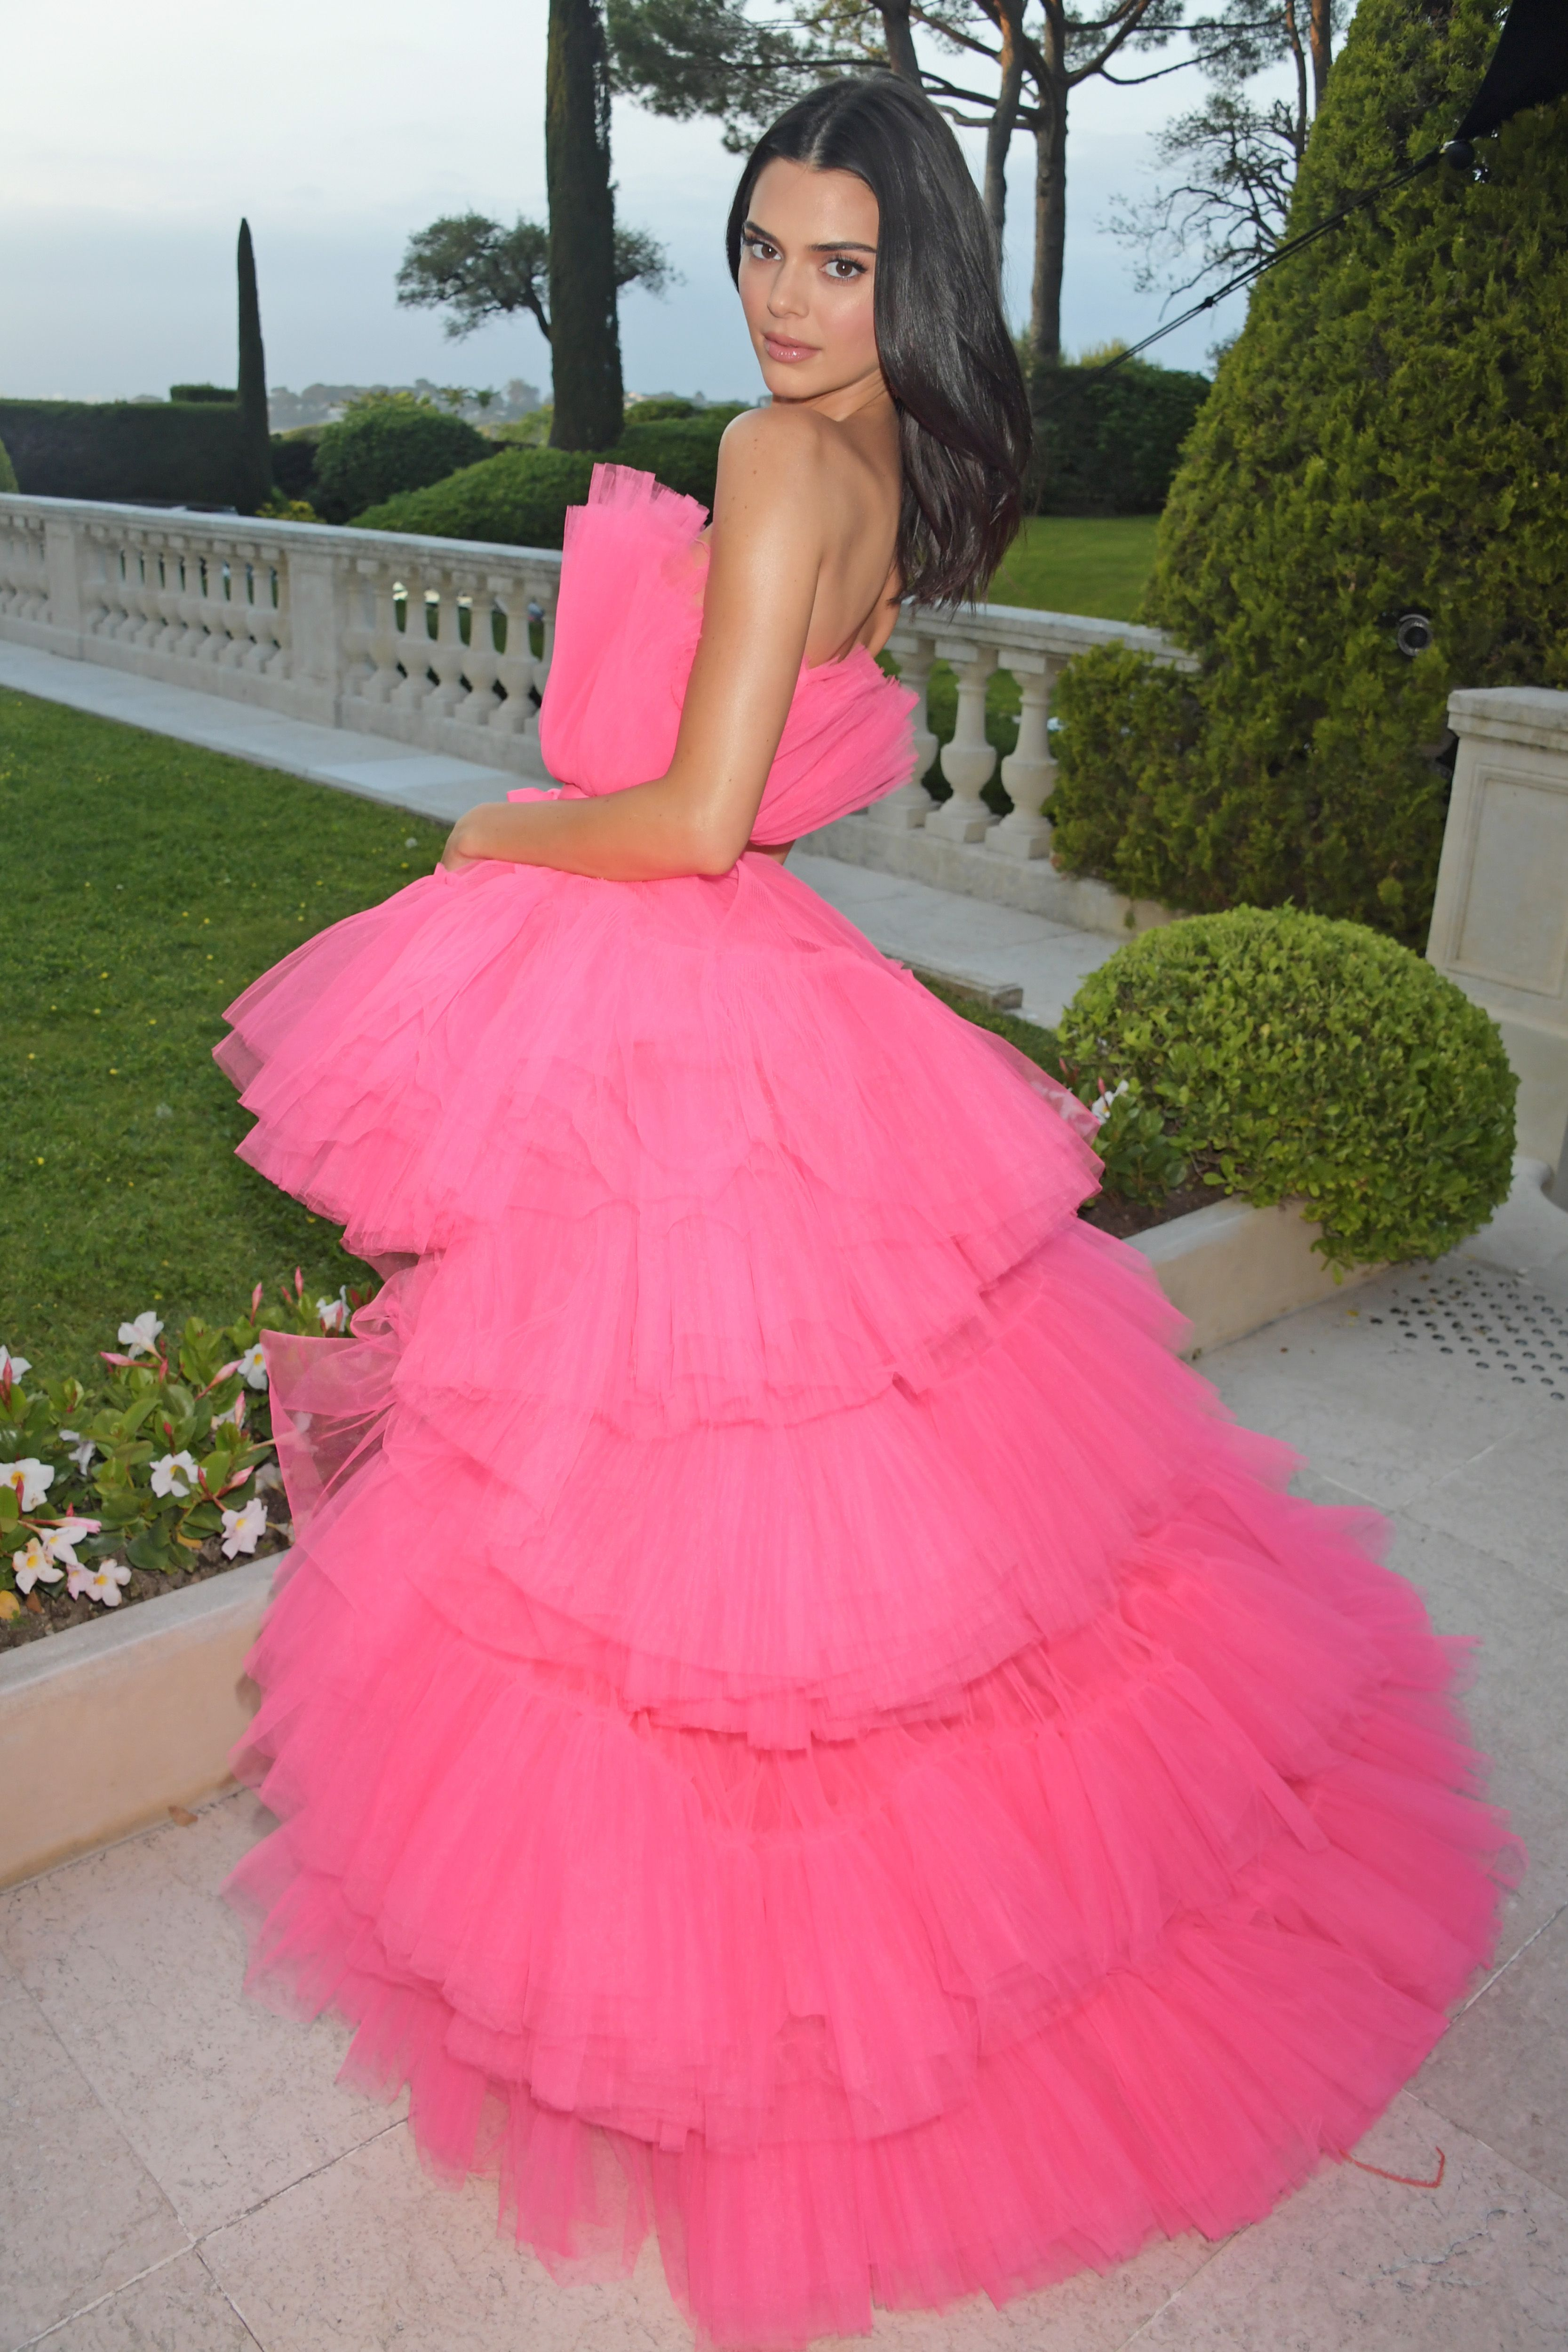 Kendall Jenner Wore The Ultimate Barbie Dress To The amfAR Cannes Gala